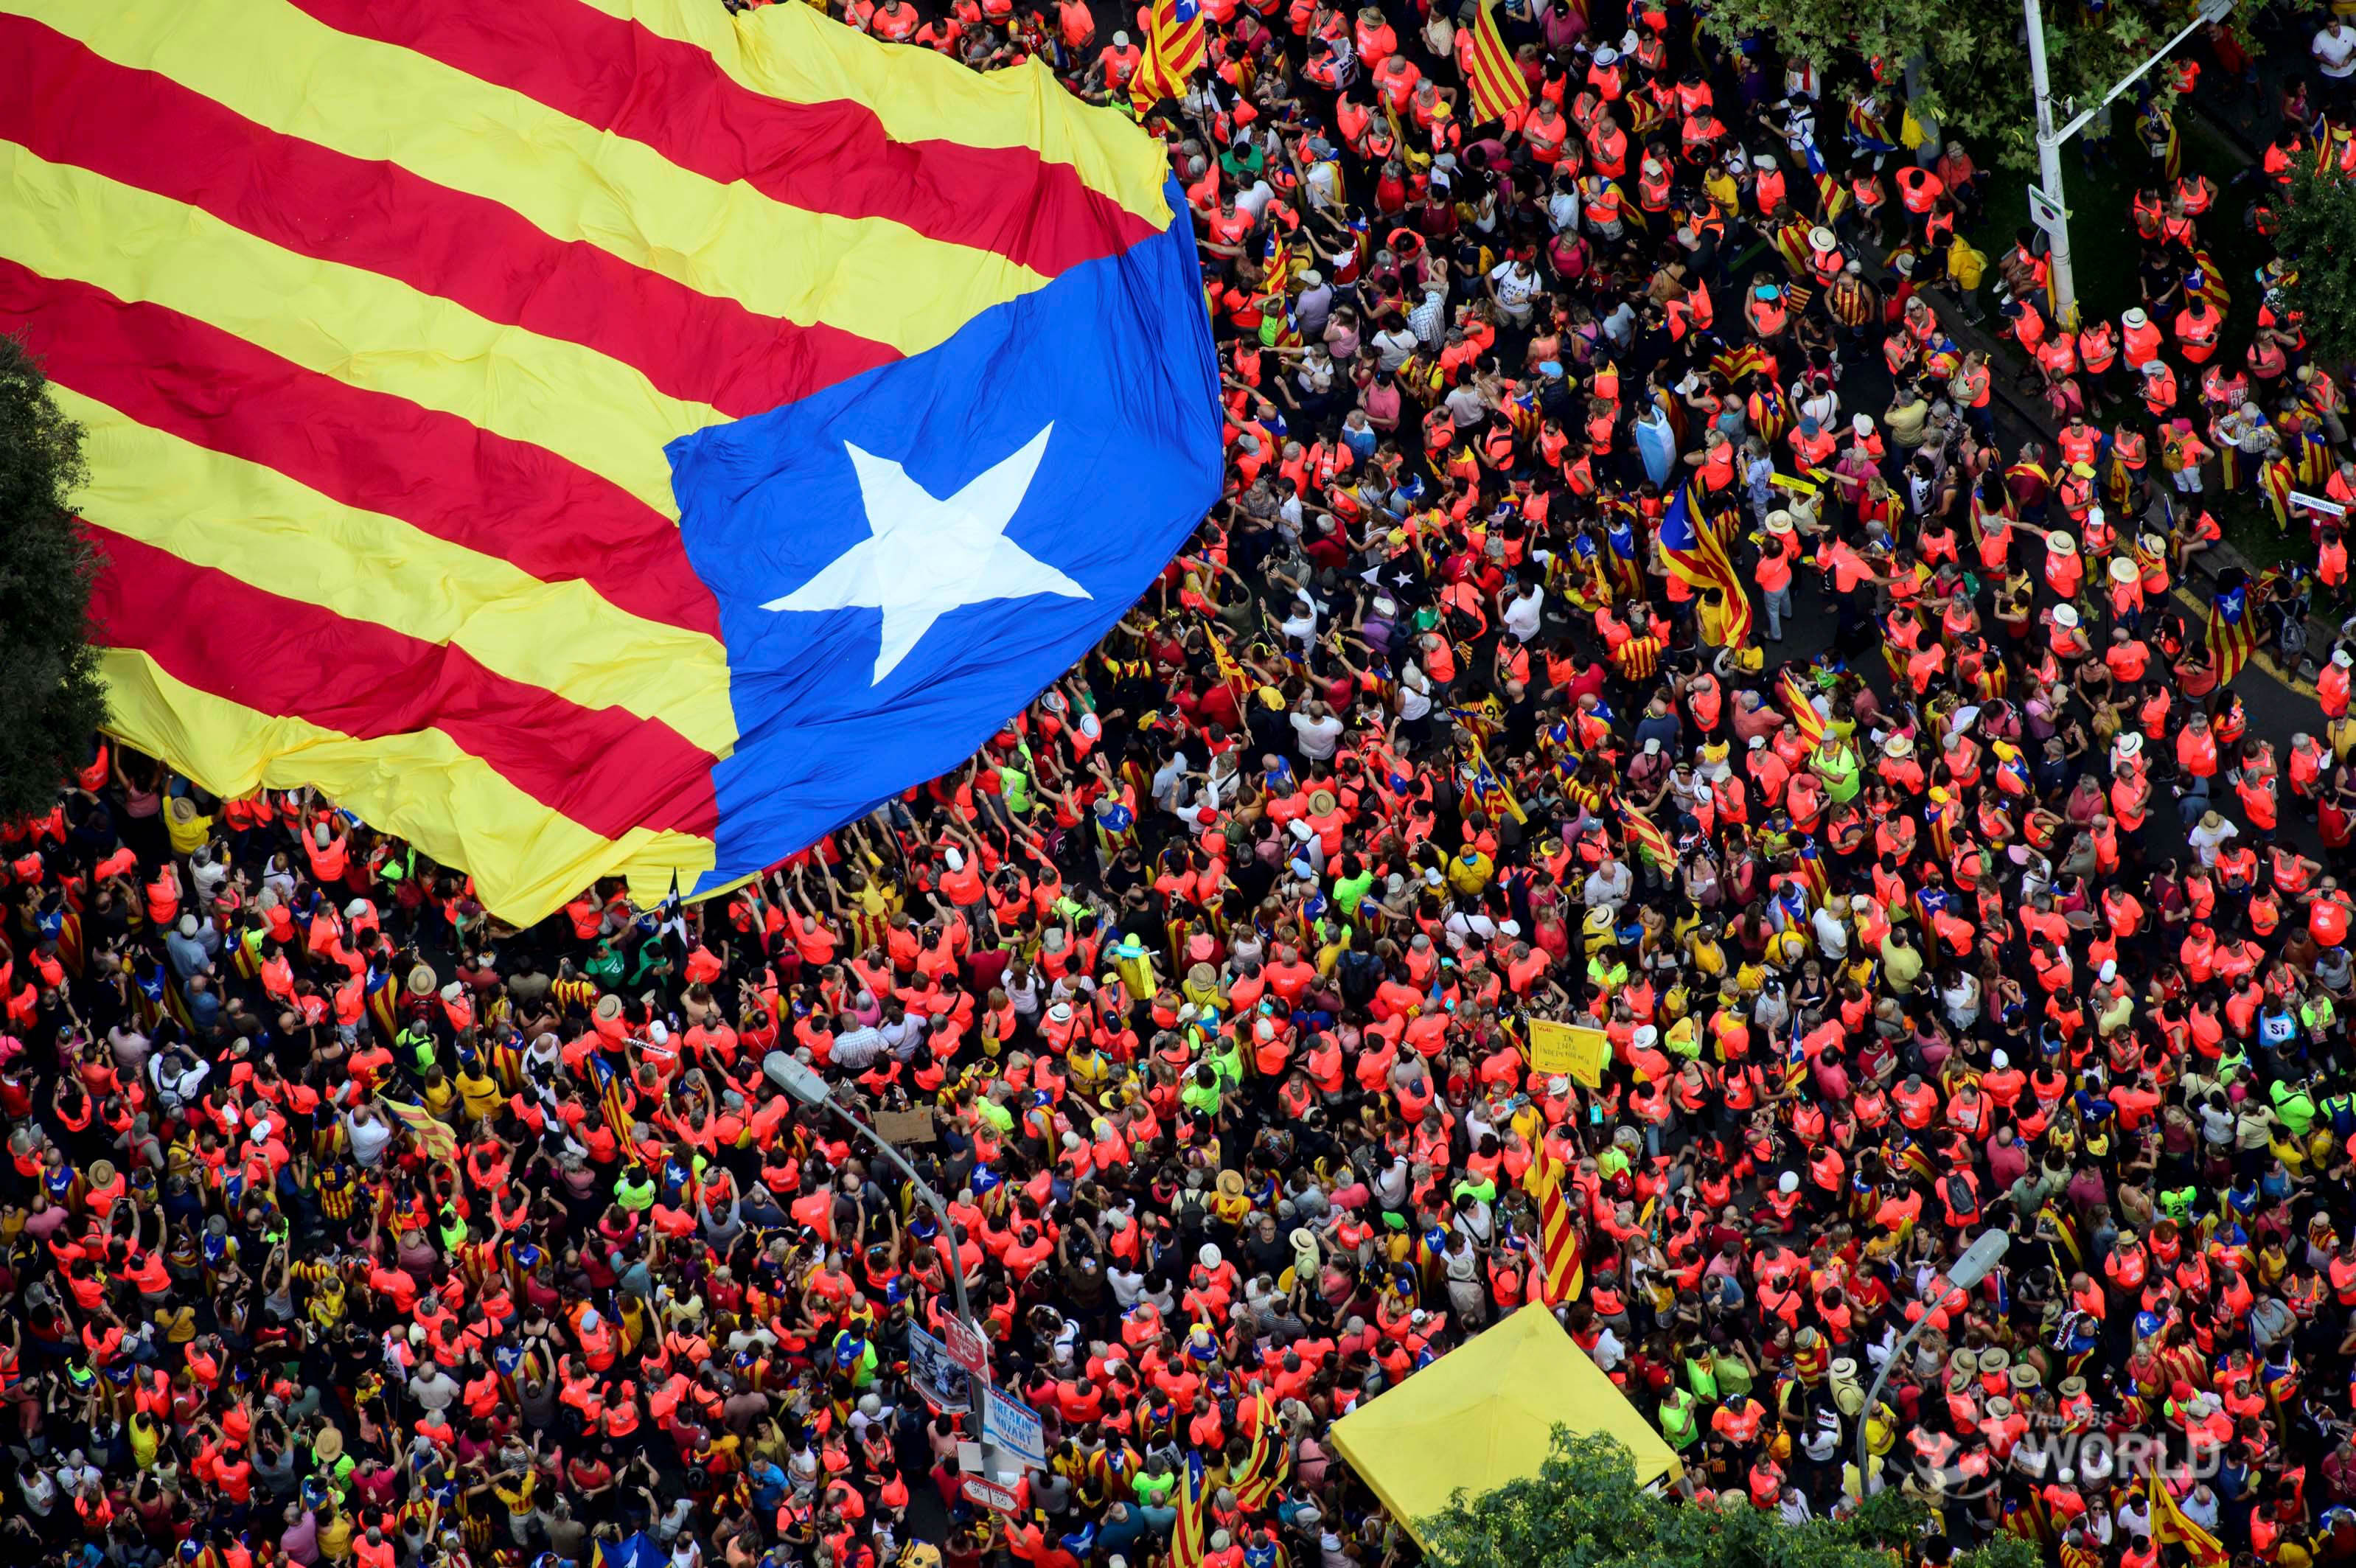 SPAIN: Catalan separatists display show of strength on Barcelona streets